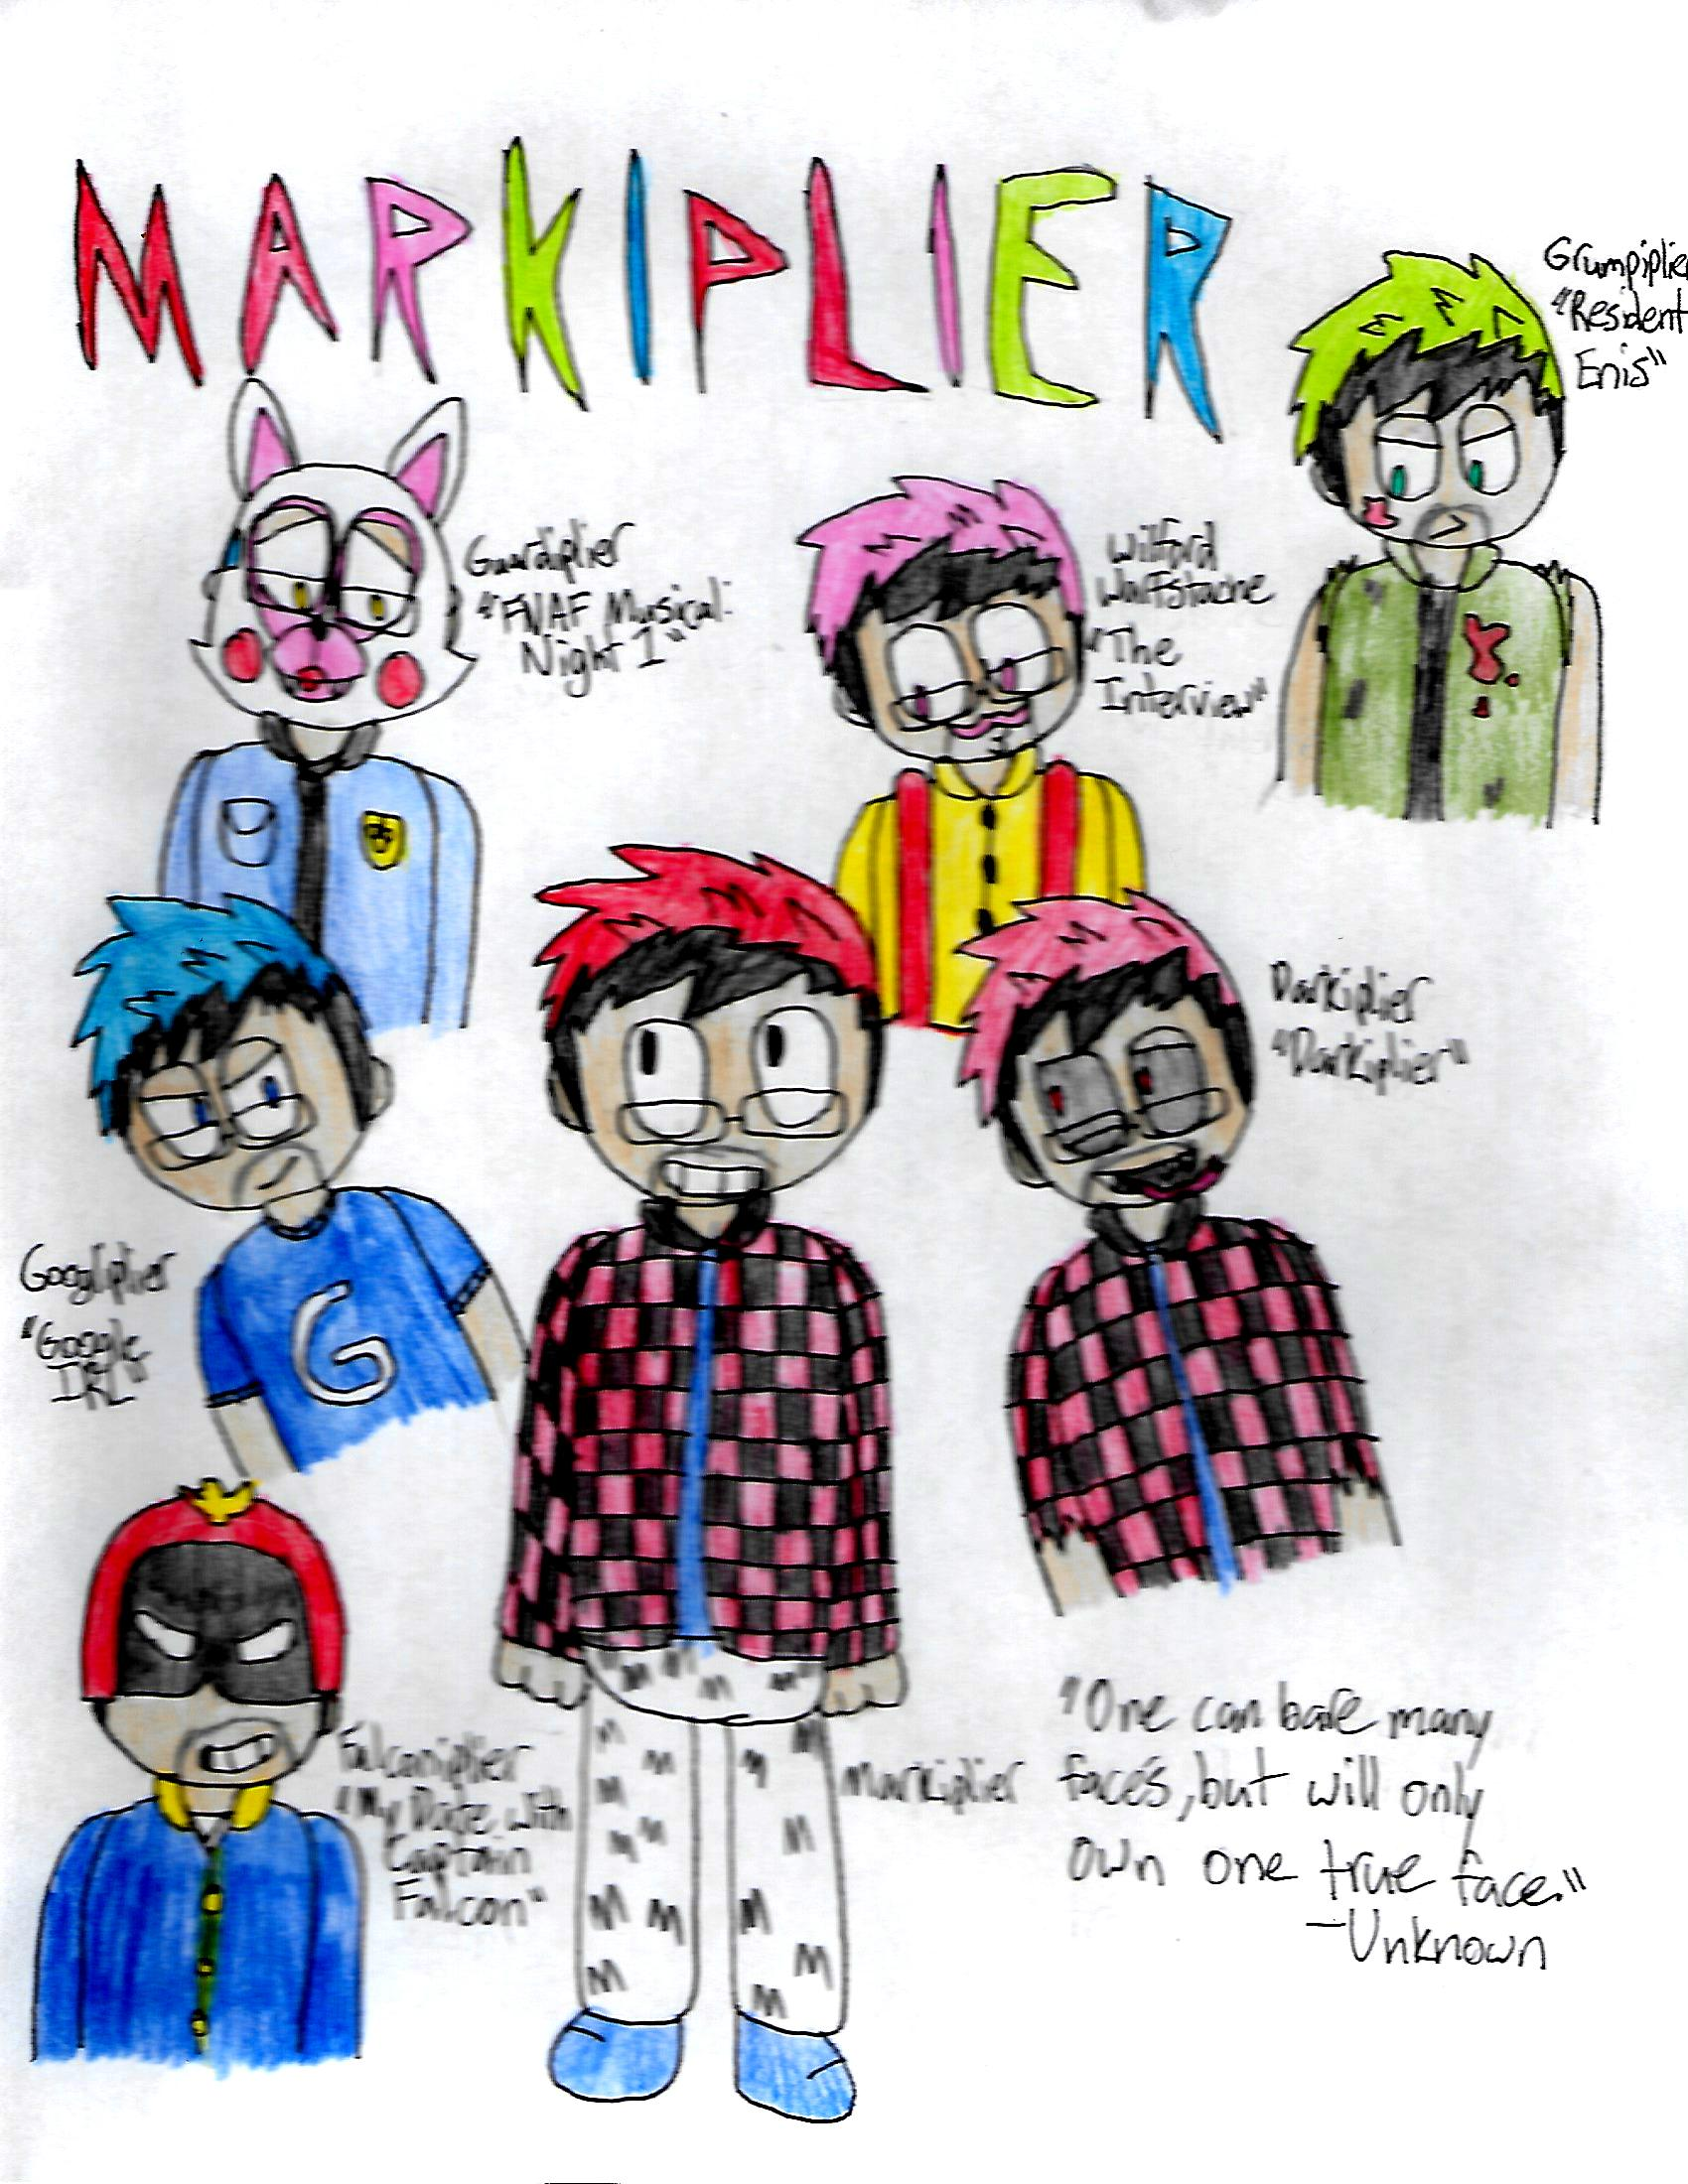 A Hairigram of Markiplier